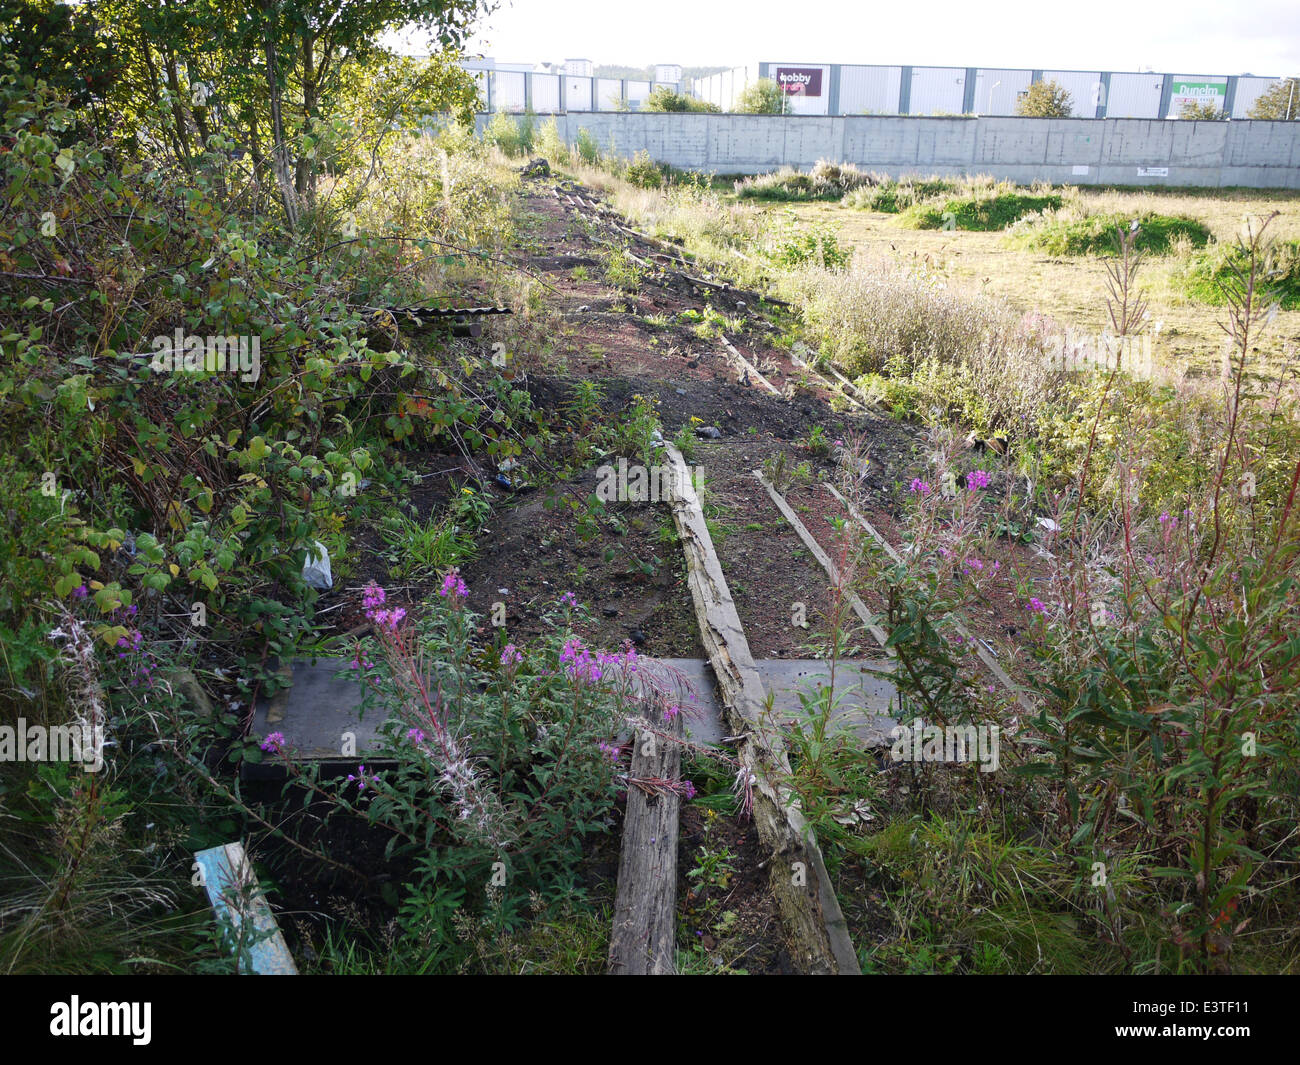 The Remains of the Terracing at Firs Park Football Ground. Former home of East Stirlingshire FC. - Stock Image